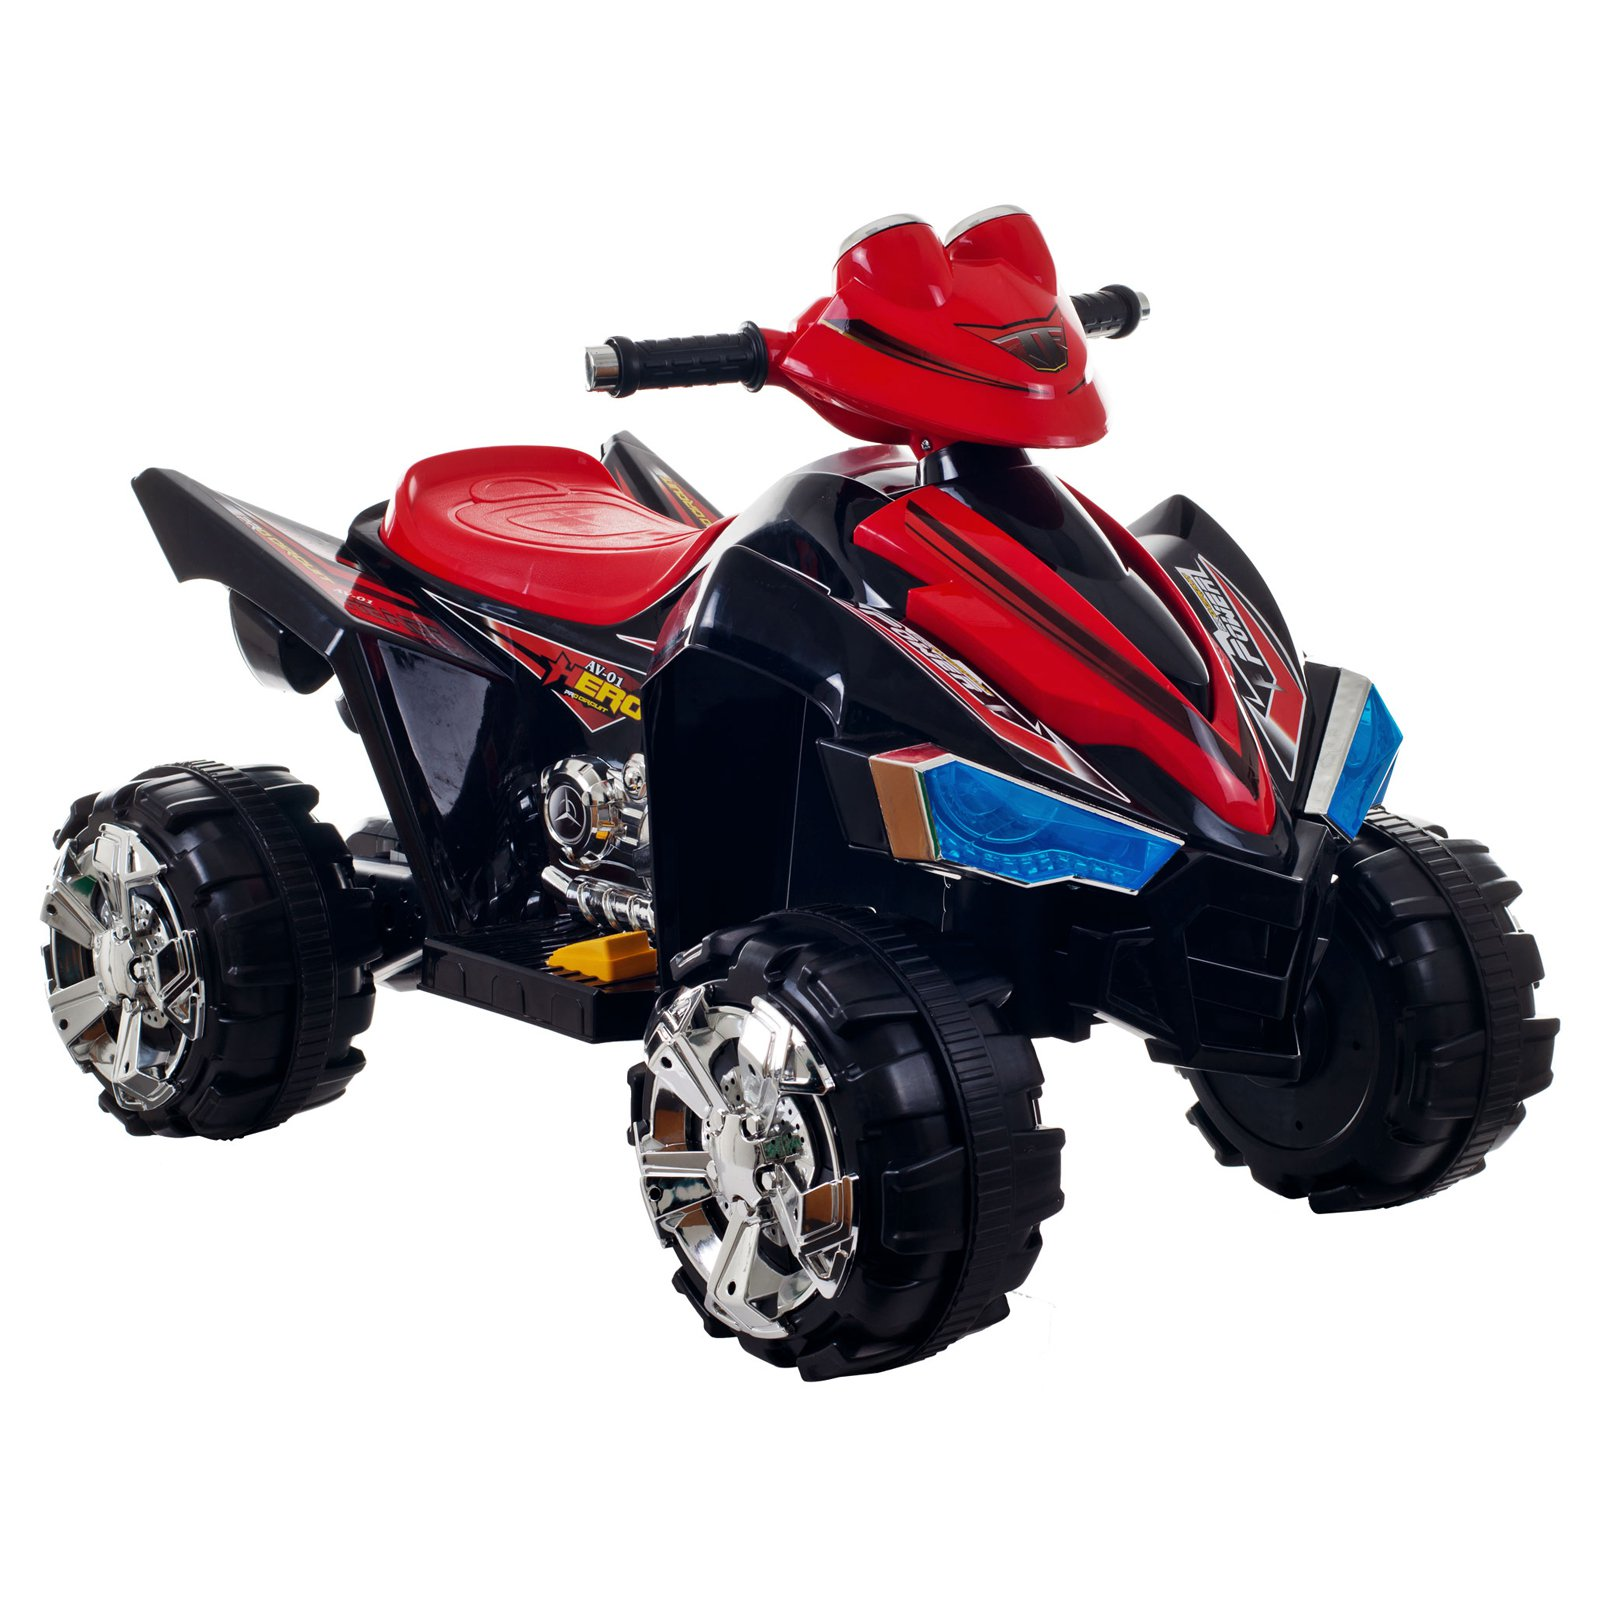 Ride On Toy Quad Battery Powered Atv Four Wheeler With How To Build Bird Sound Effects Generator Circuit By Lil Rider Toys For Boys And Girls 2 5 Year Olds Black